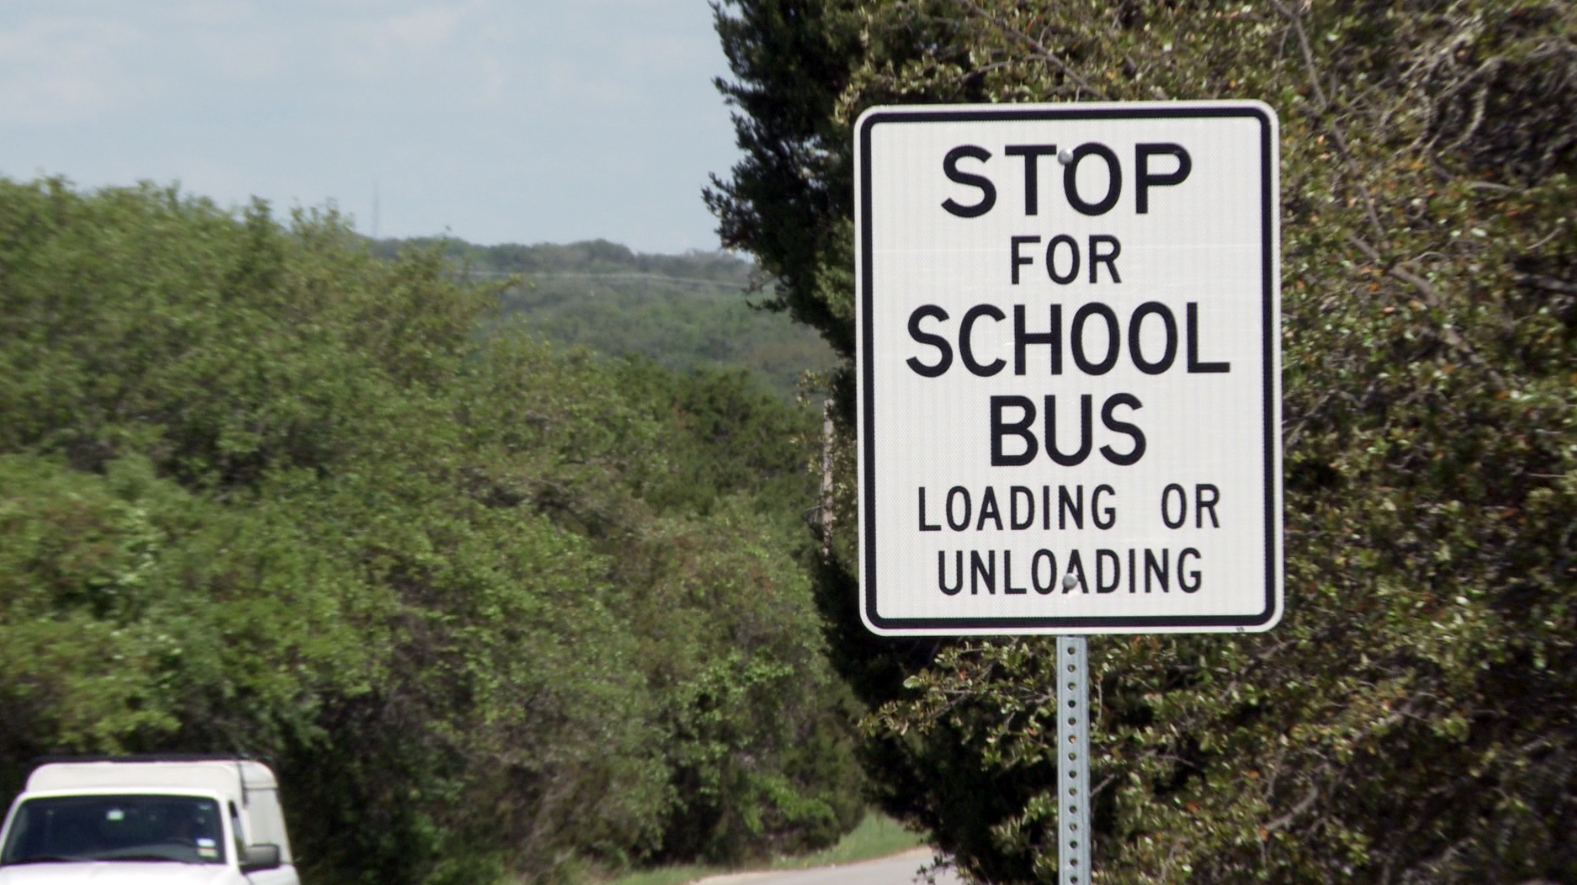 Stop for School Bus Loading or Unloading at http://www.txdot.gov/driver/kids-teens/school.html.